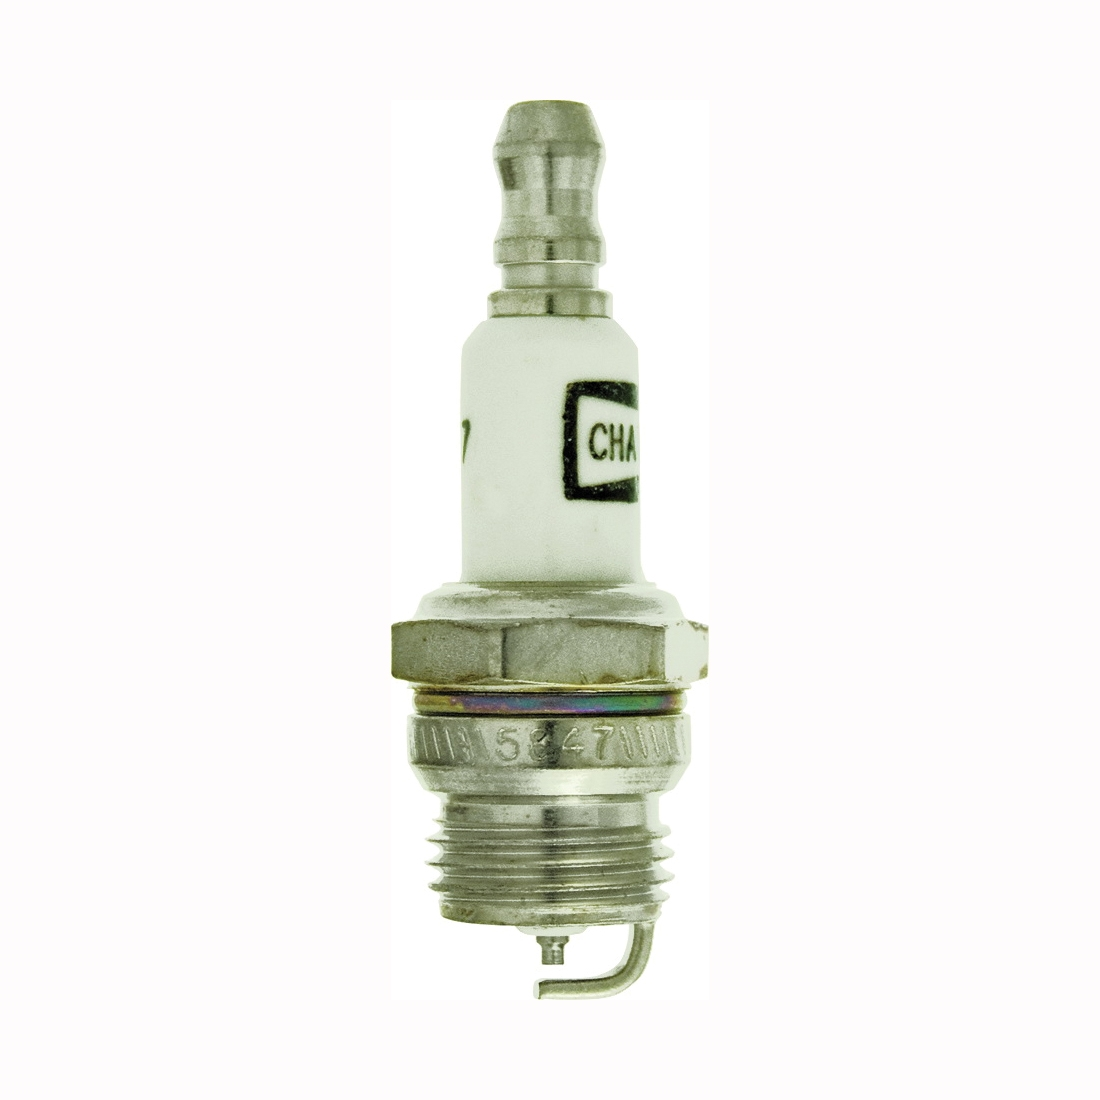 Picture of Champion DJ6J Spark Plug, 0.022 to 0.028 in Fill Gap, 0.551 in Thread, 5/8 in Hex, Copper, For: Small Engines